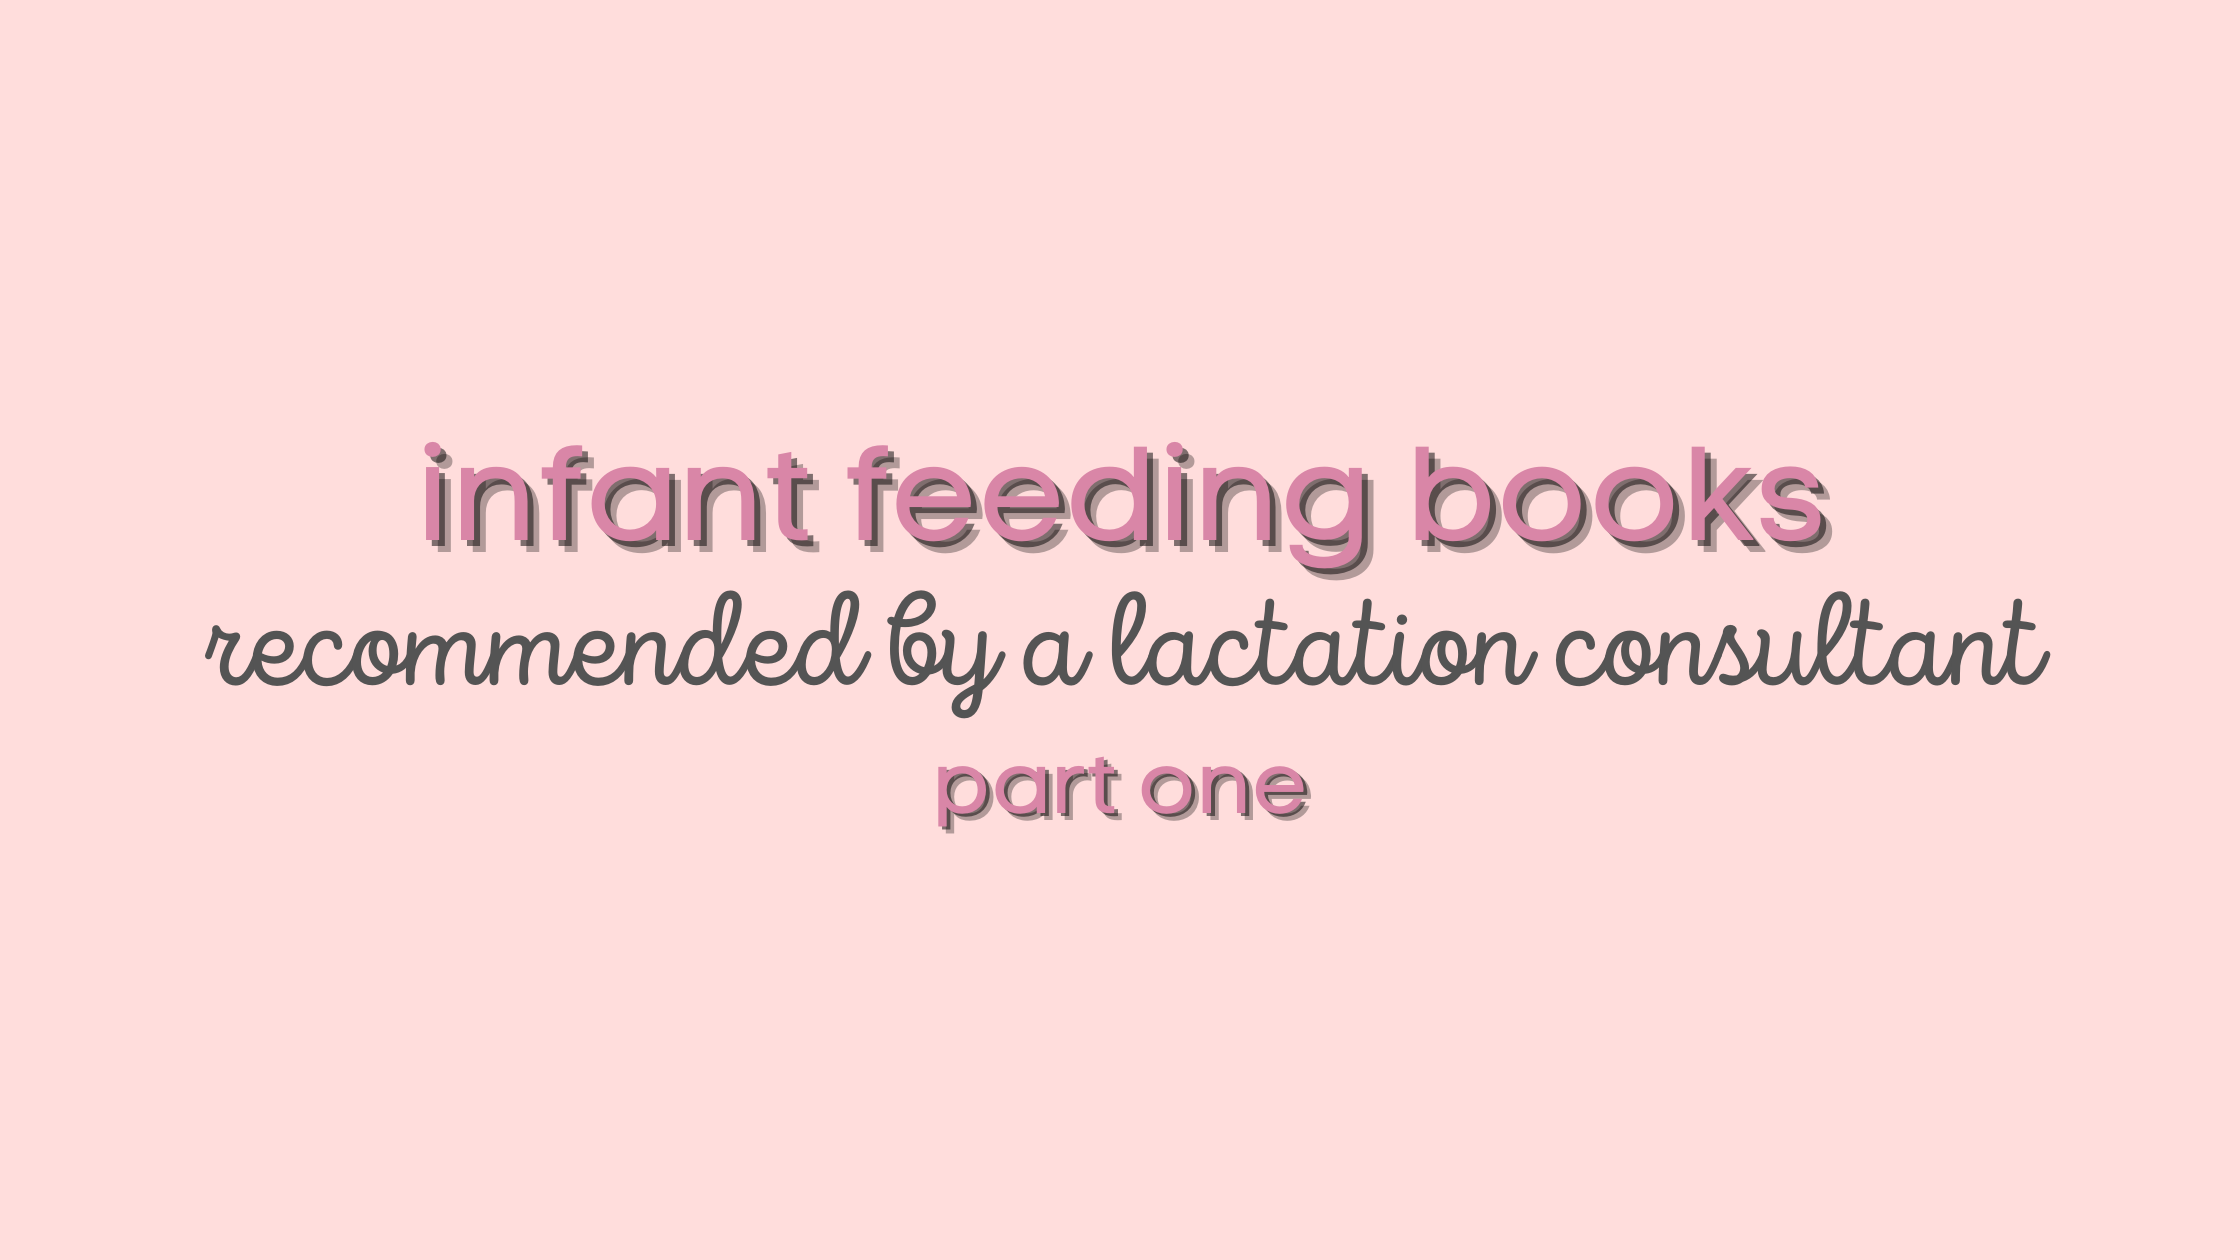 infaNT feeding, breastfeeding books